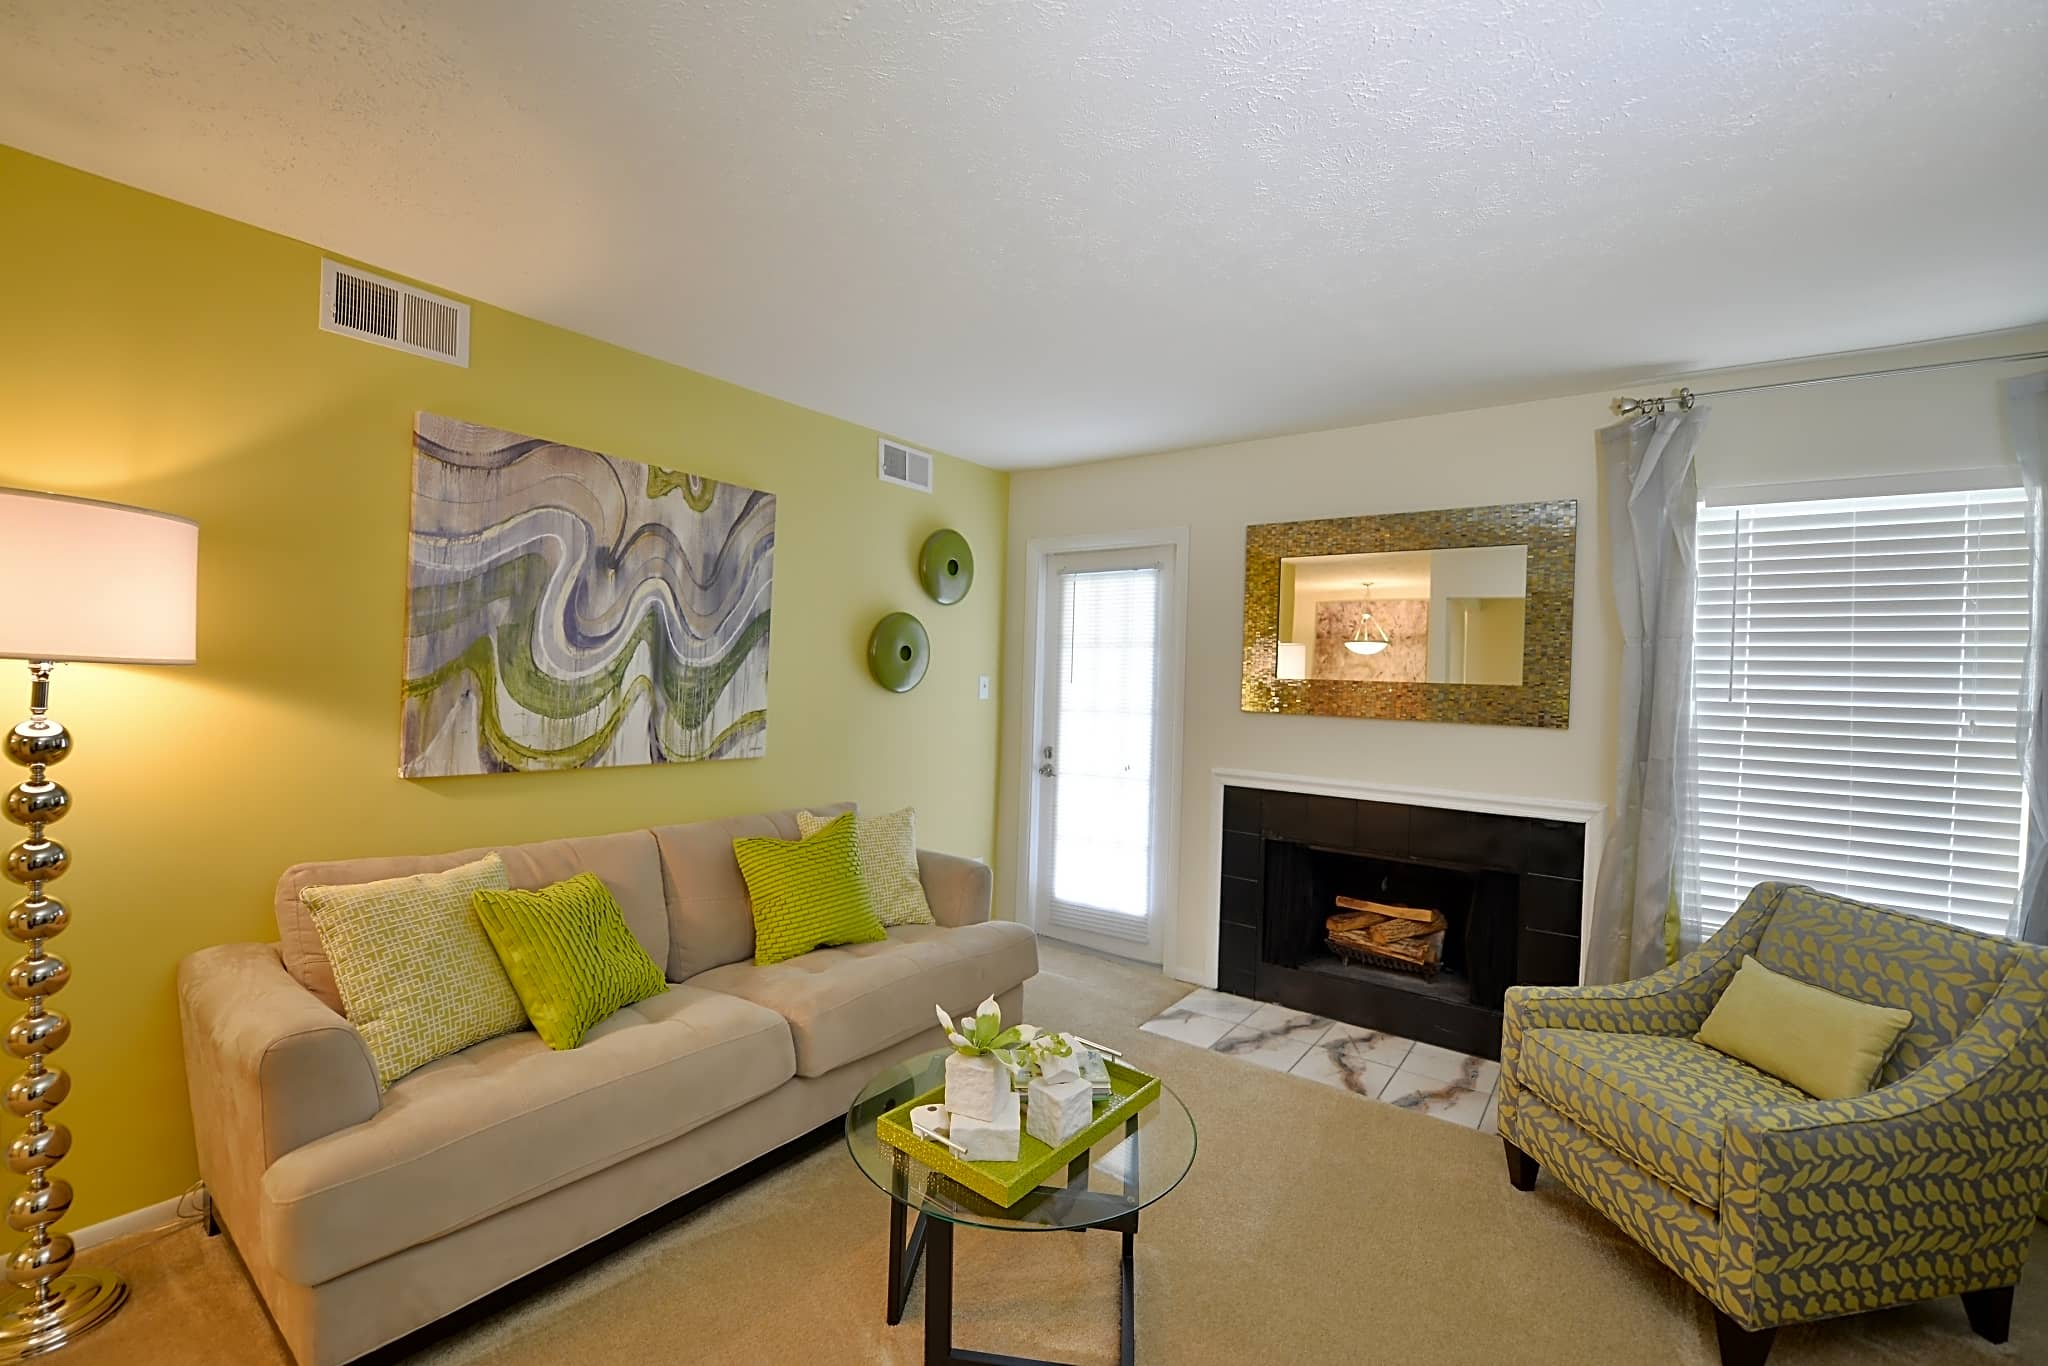 Apartments And Houses For Rent Near Me In Germantown